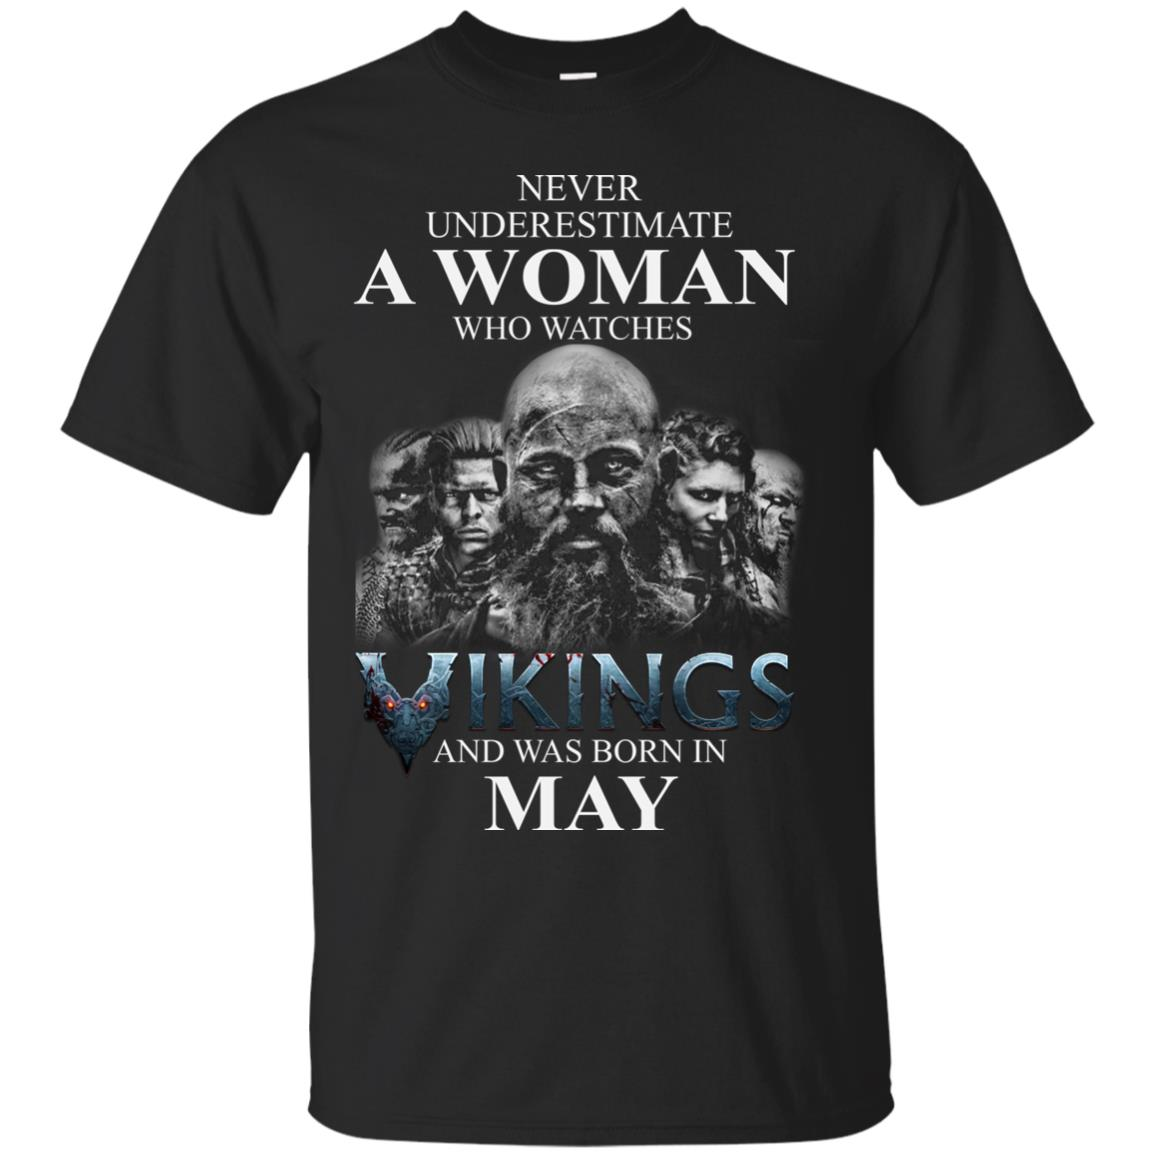 image 1303 - Never Underestimate A woman who watches Vikings and was born in May shirt